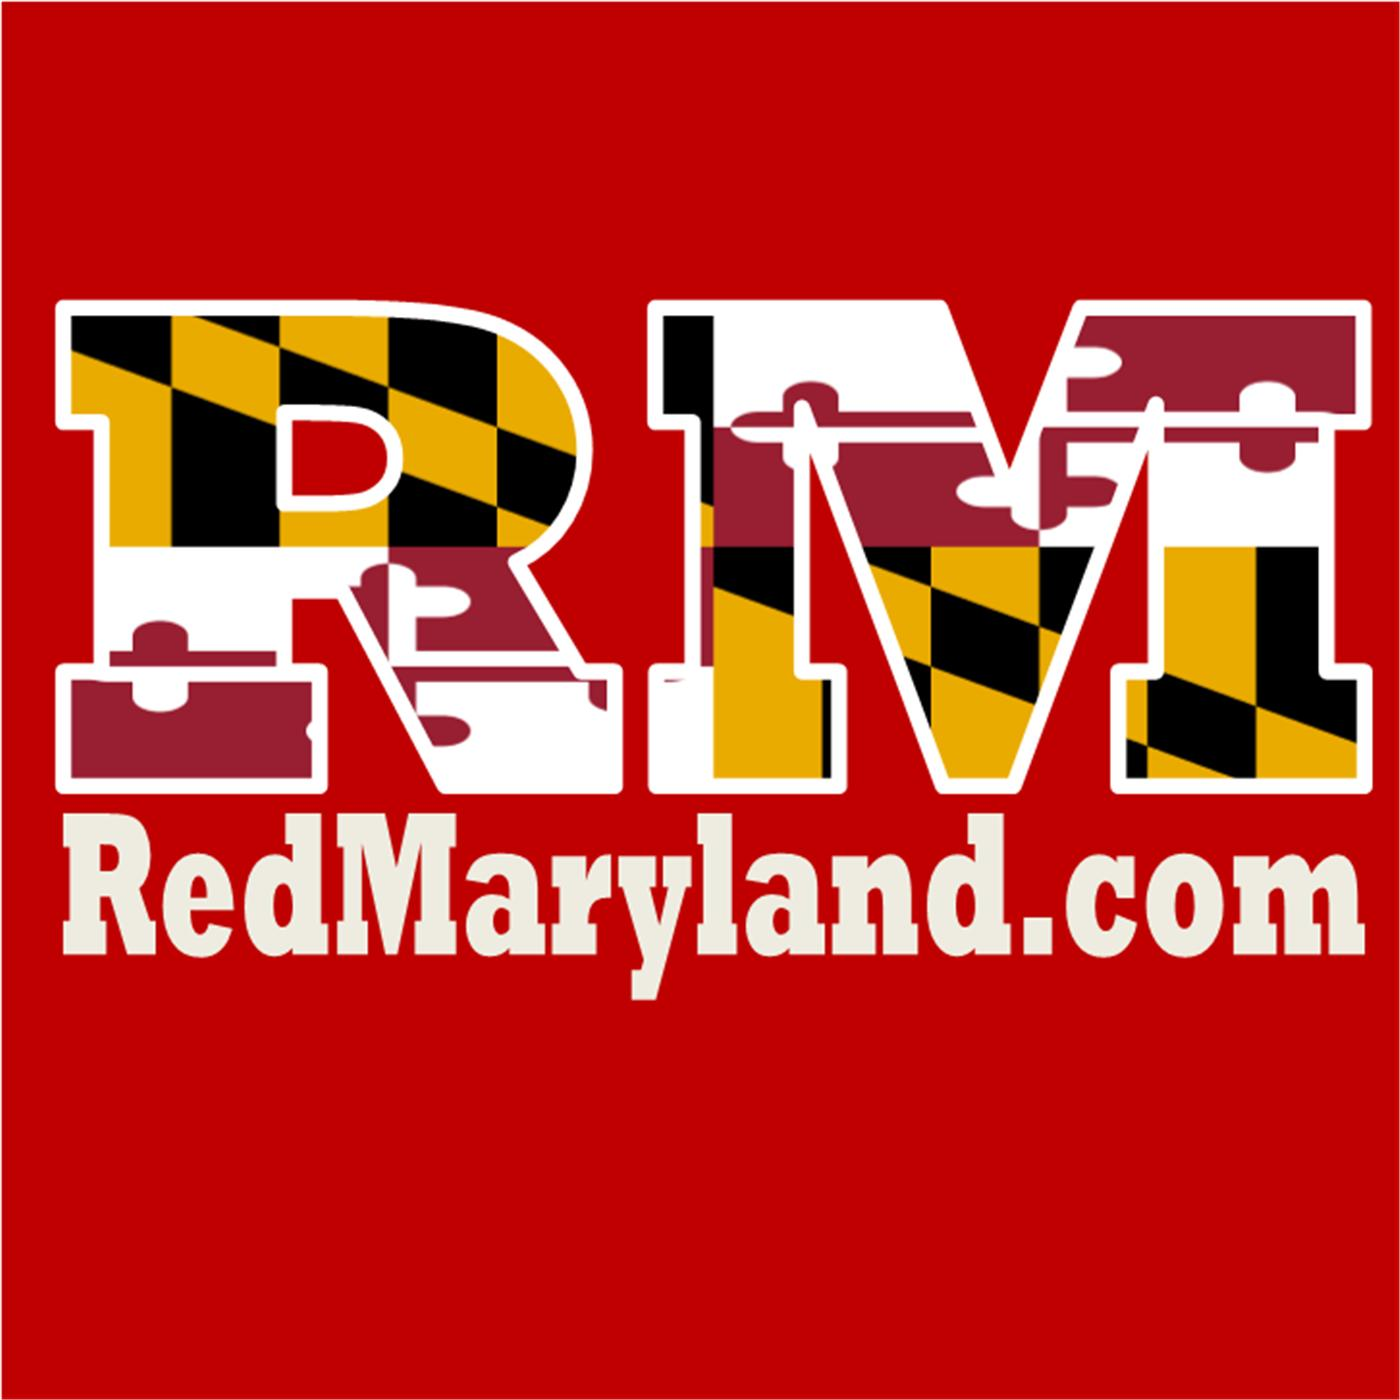 The Red Maryland Network